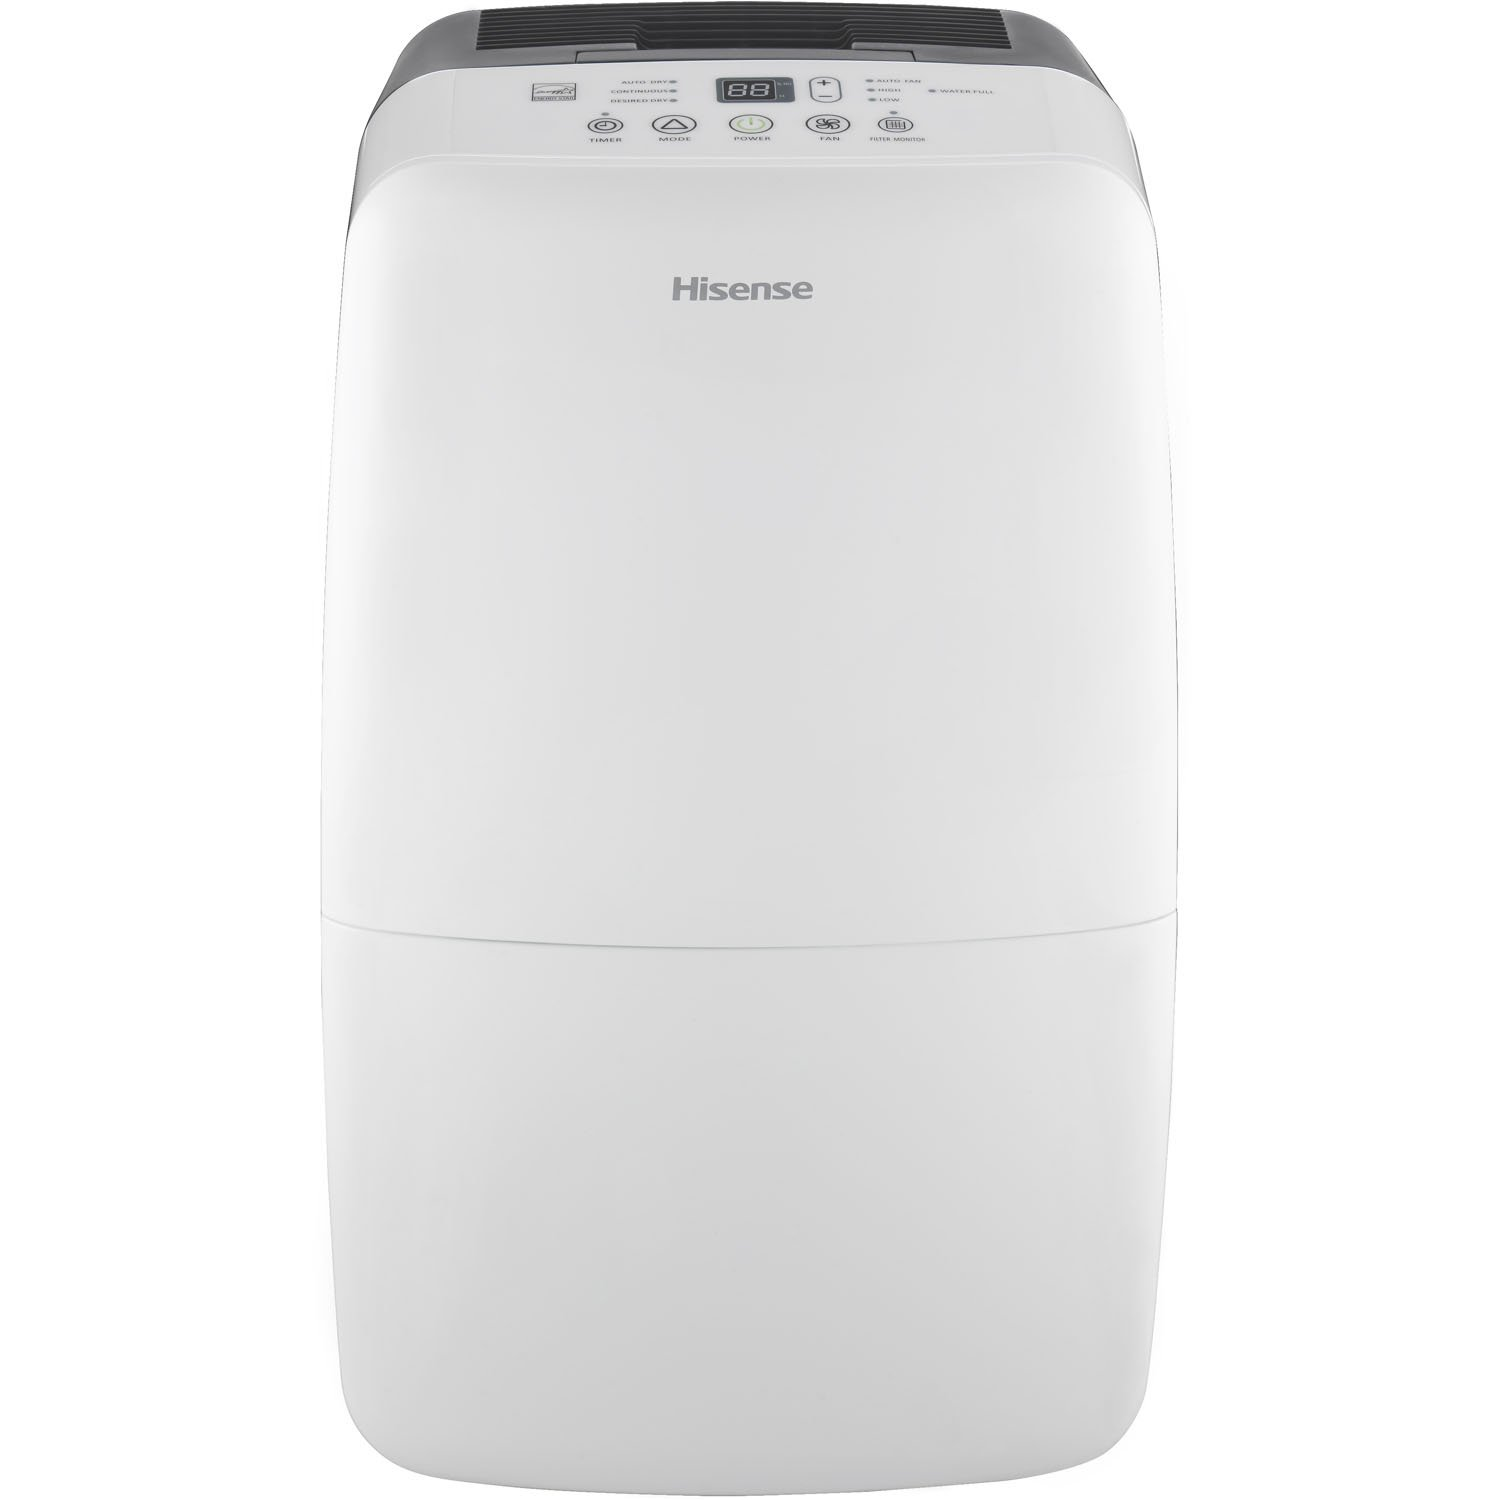 Hisense 70 dehumidifier with built-in pump